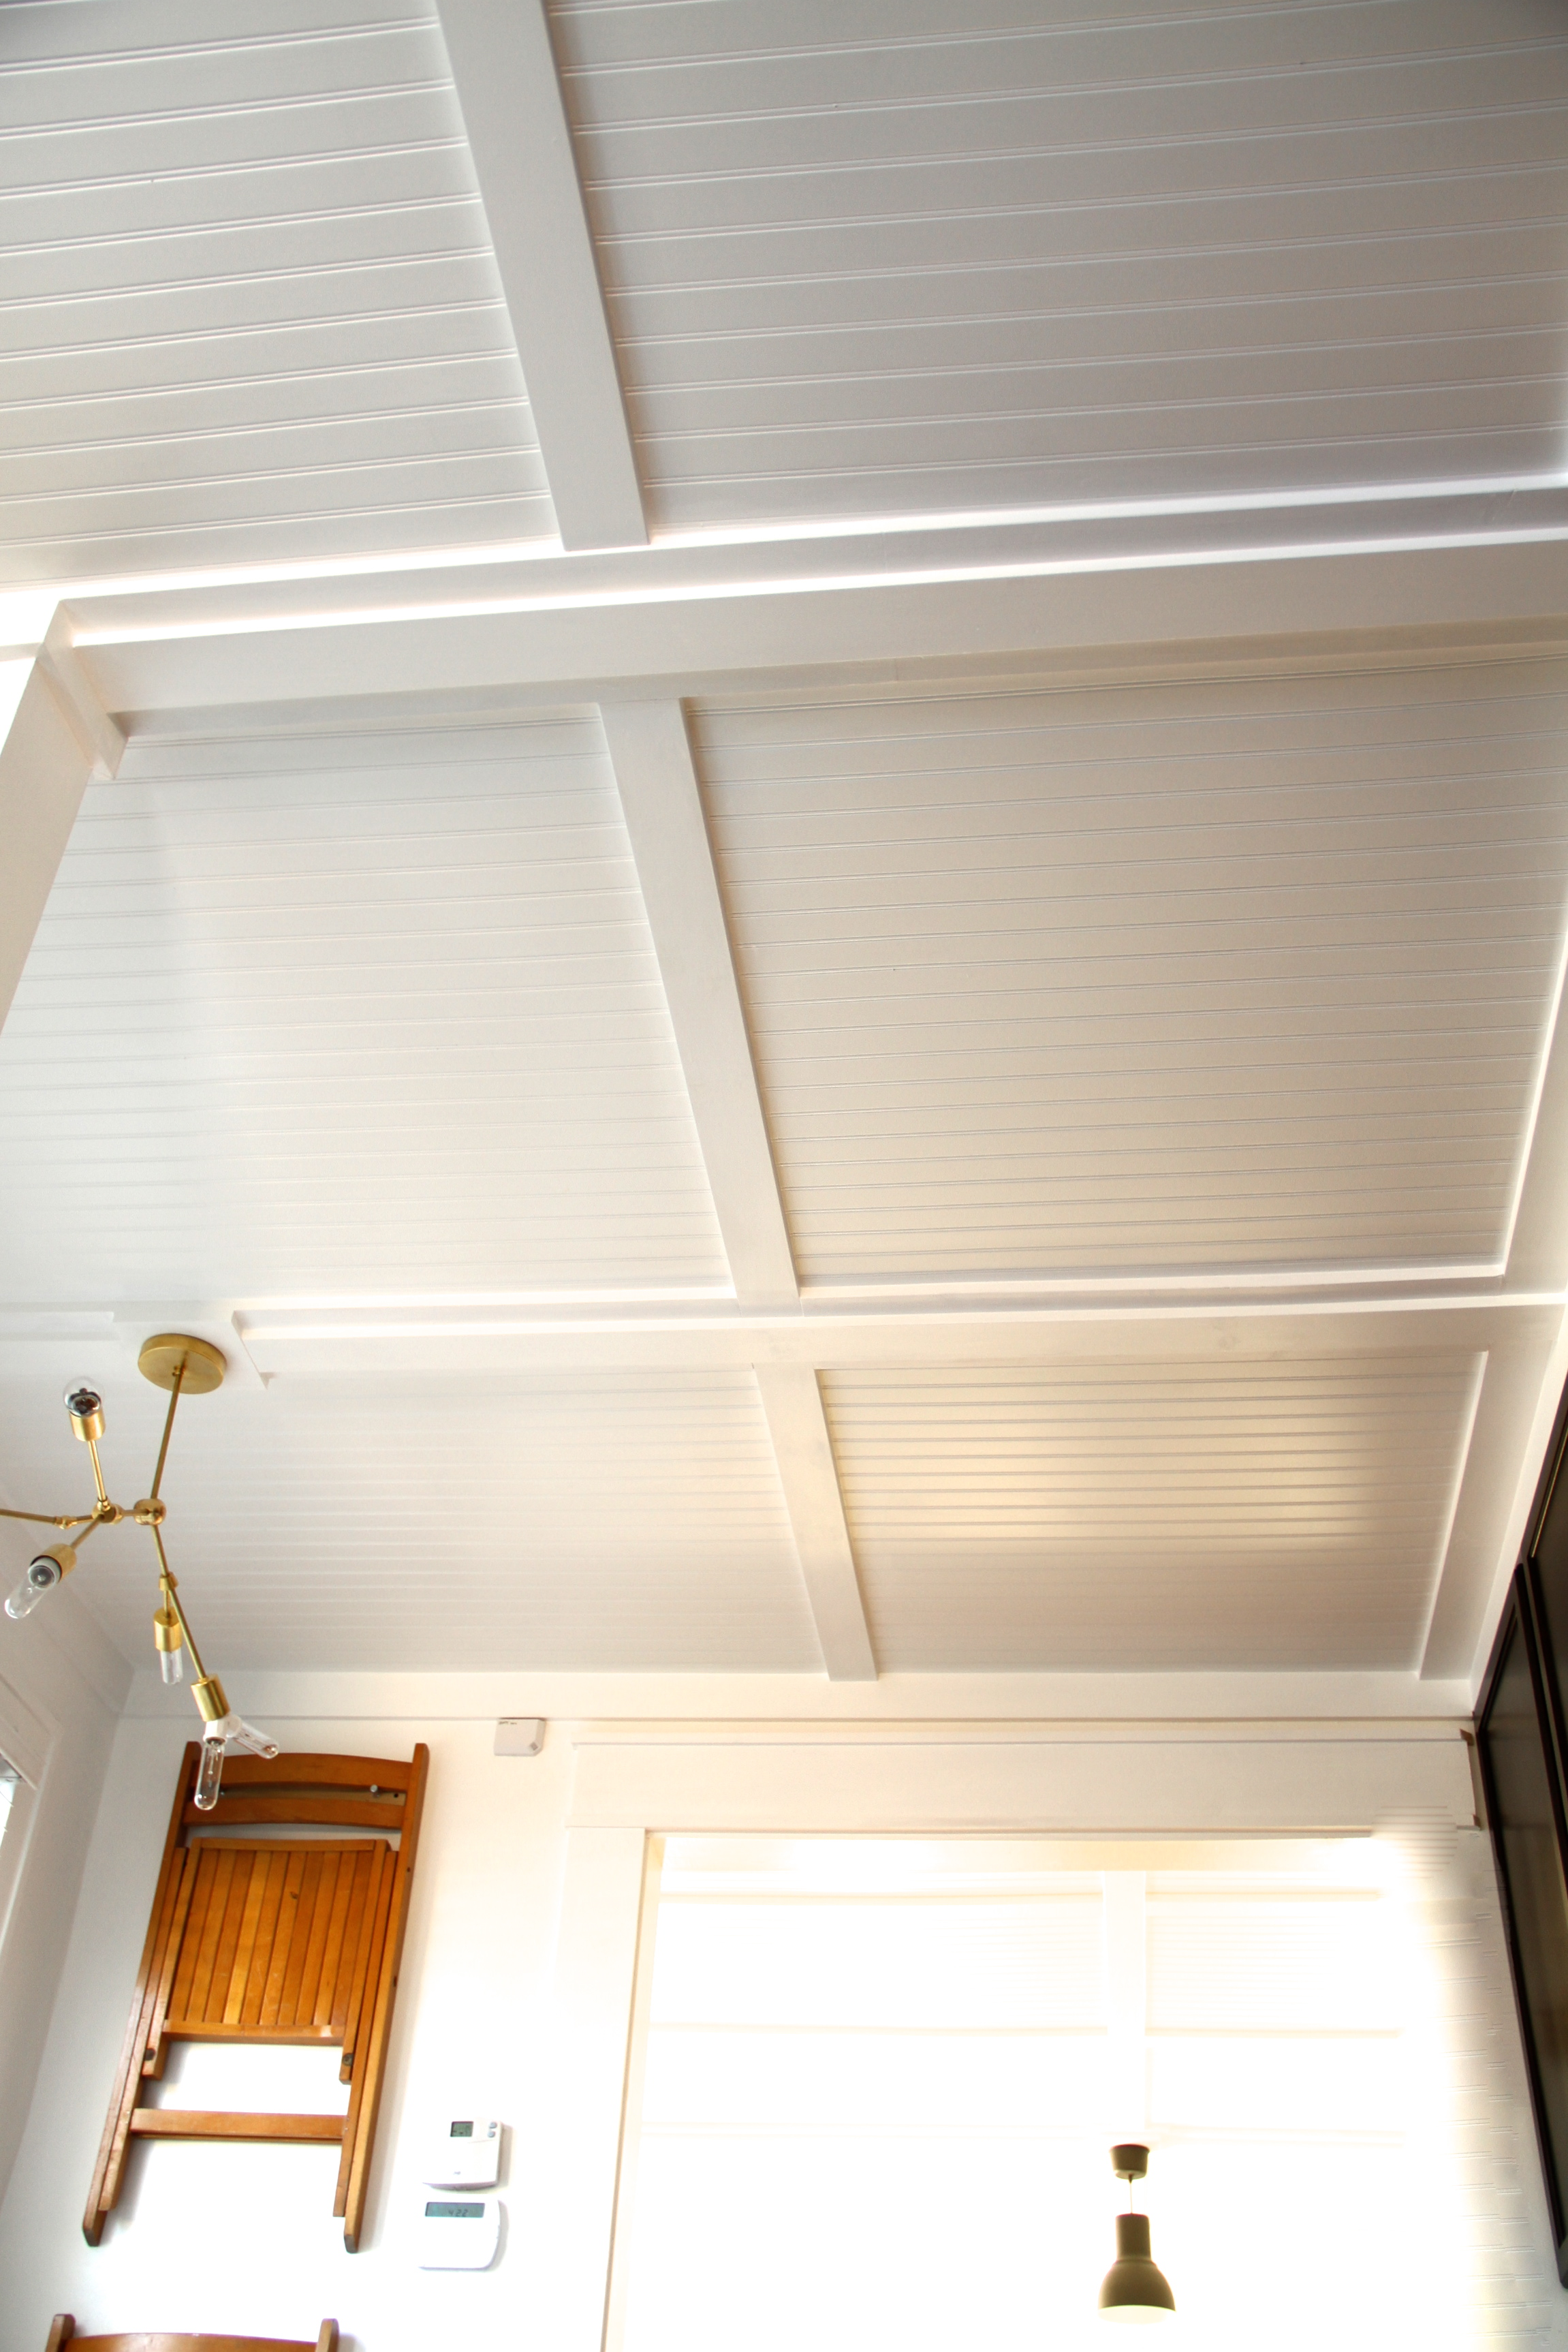 Apartment therapy beadboard ceiling follow up lifestyle How to disguise wood paneling